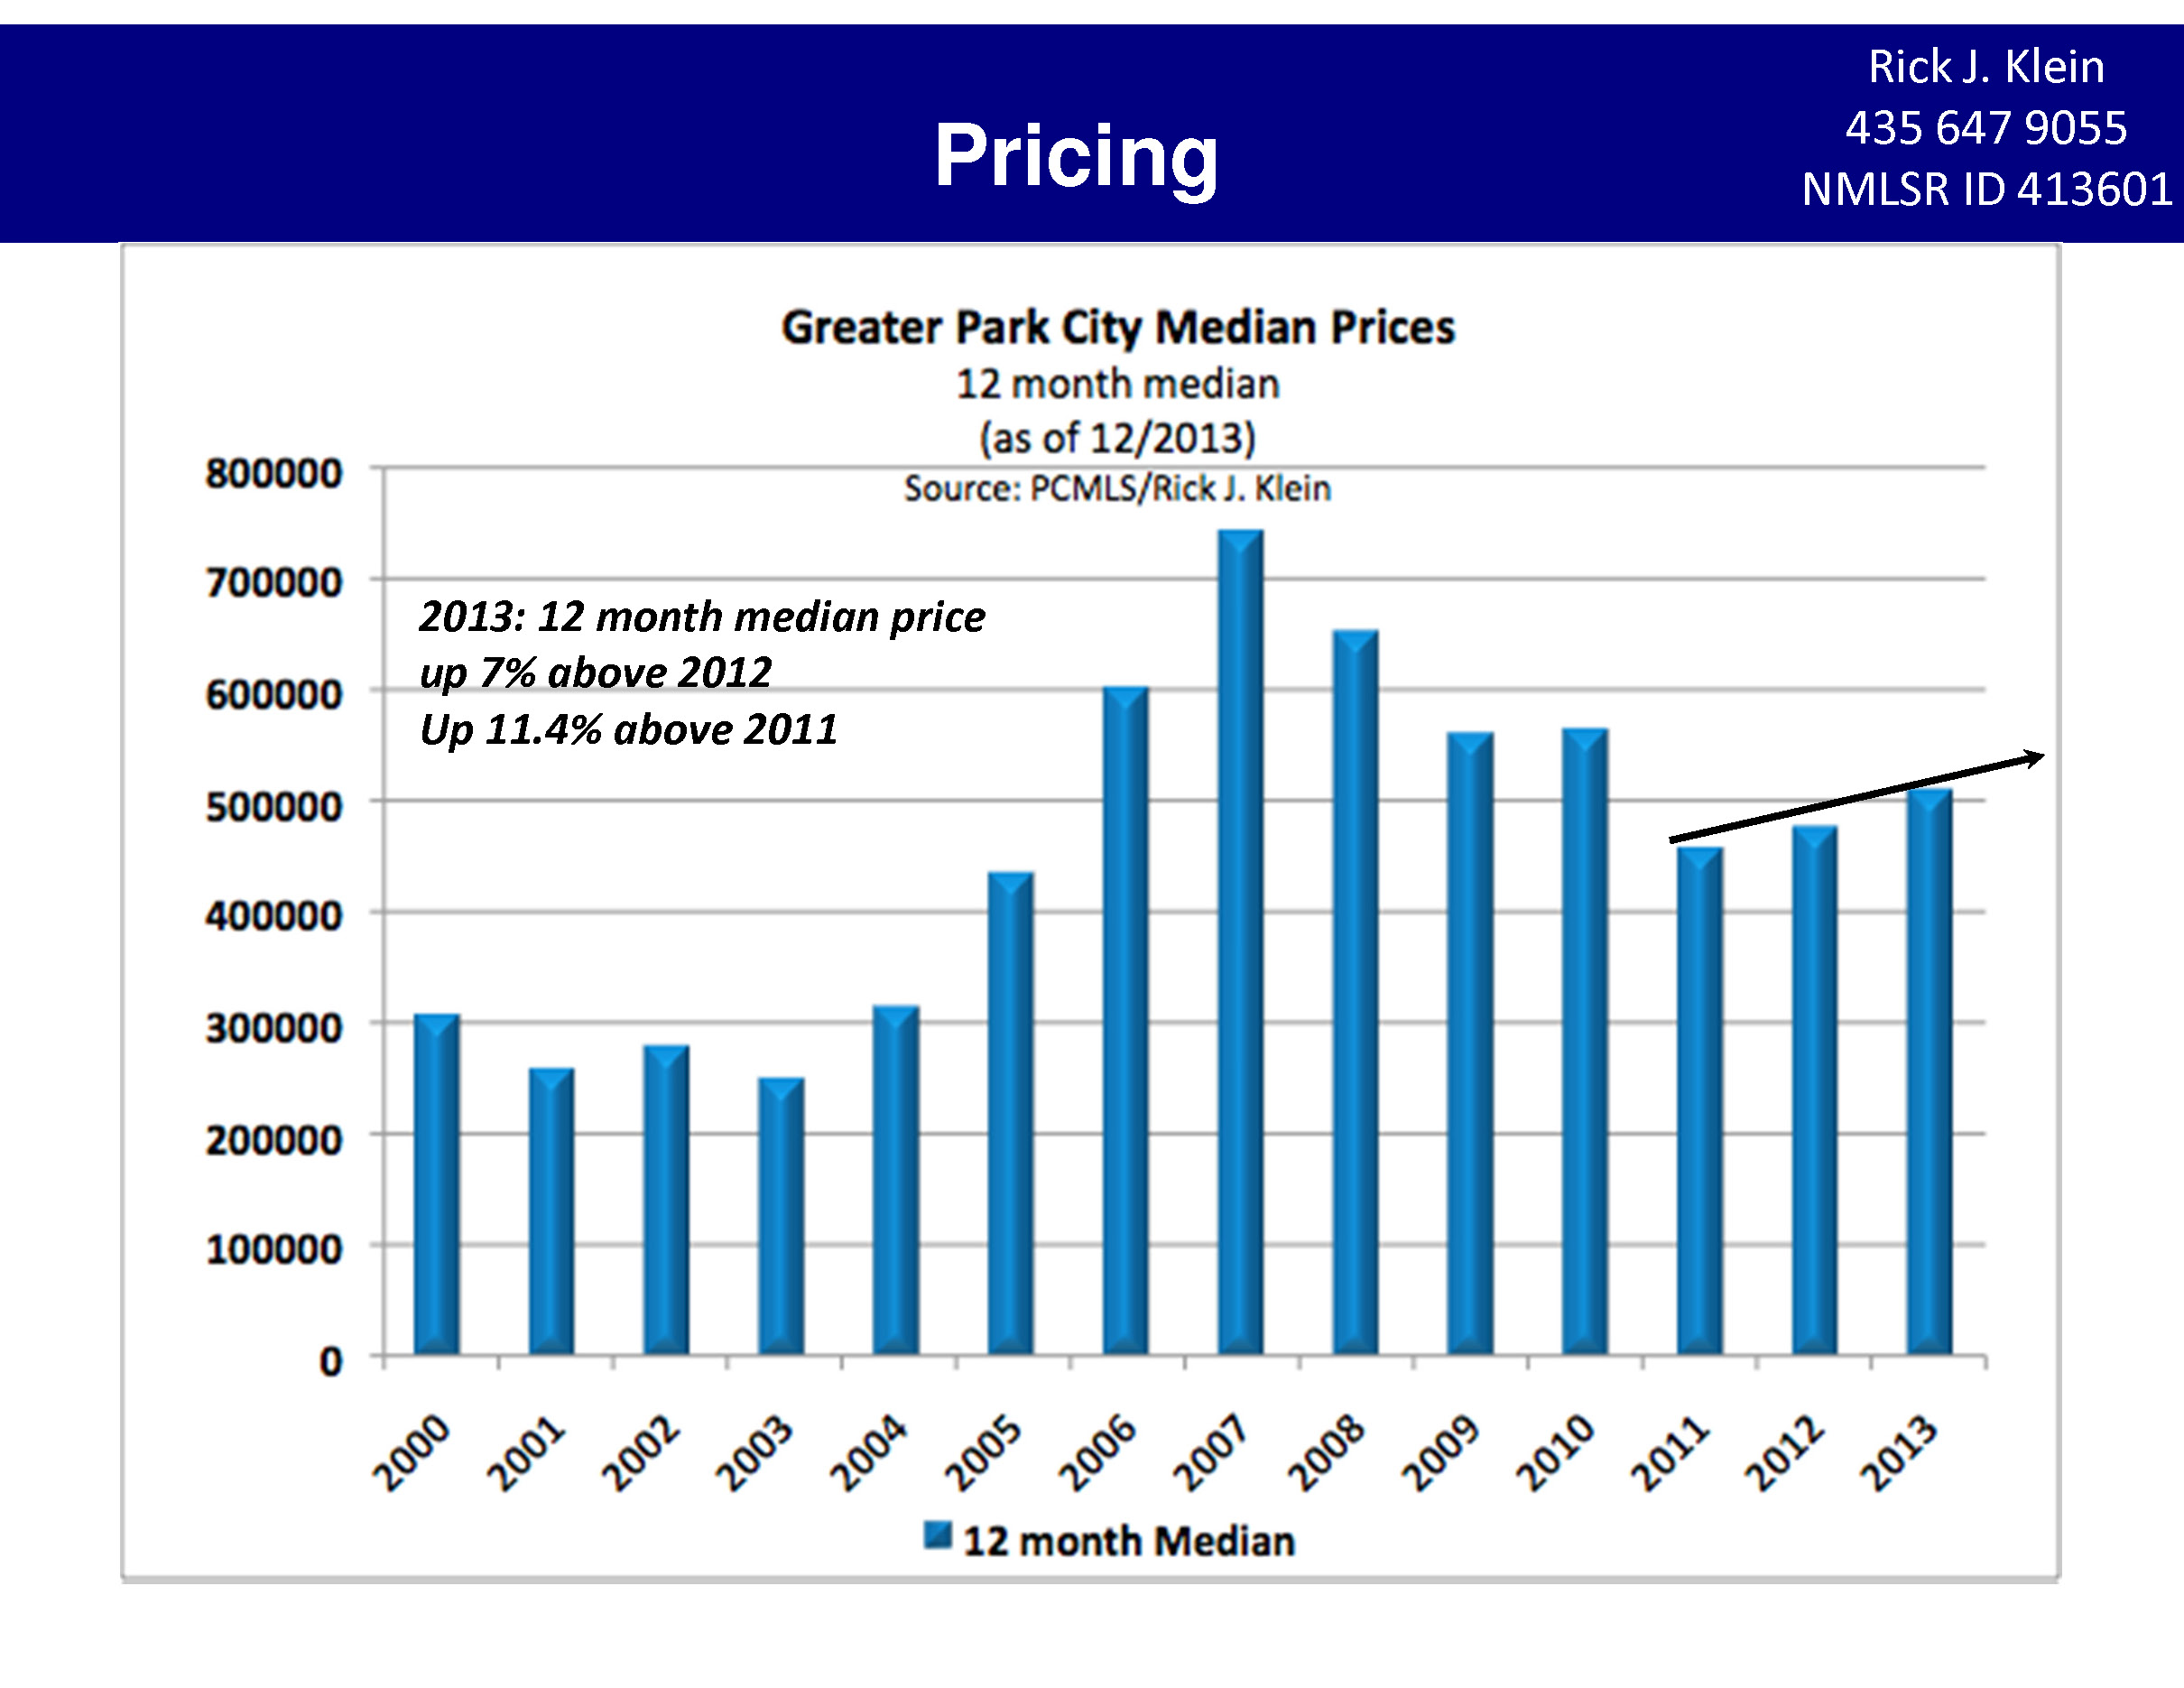 Park City Median Price Trends